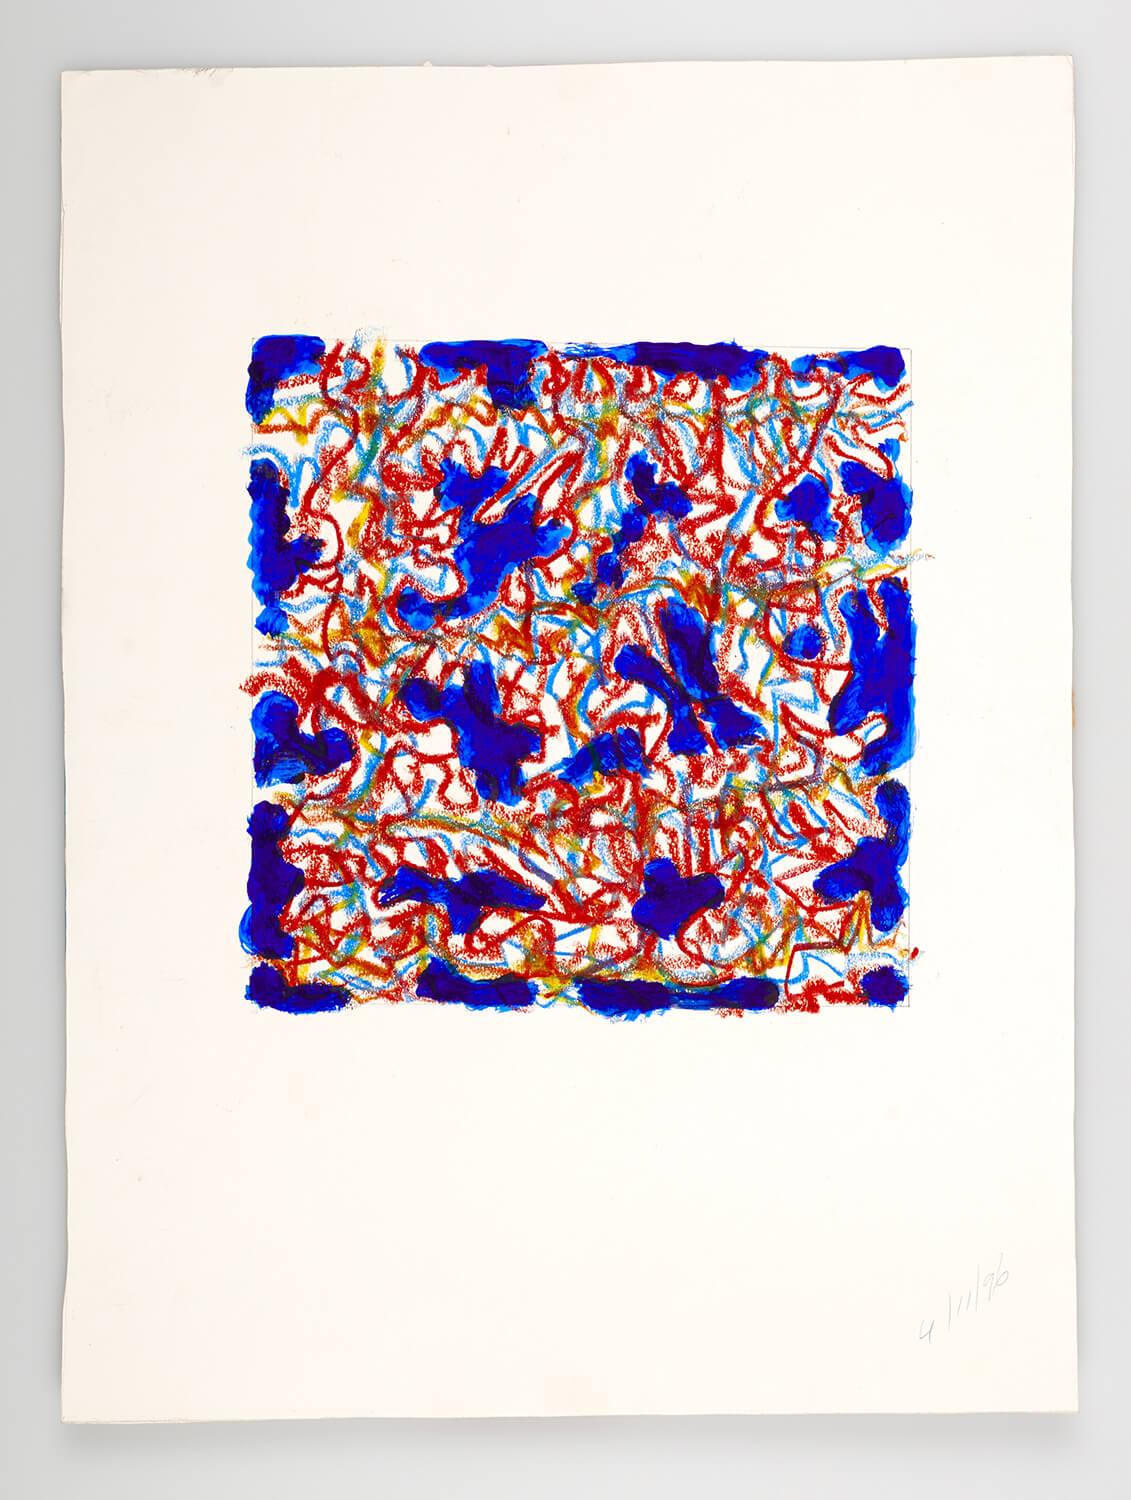 JB133 - Abstract Blue - 1996 - 25 x 25 cm - Acrylic and conte on paper